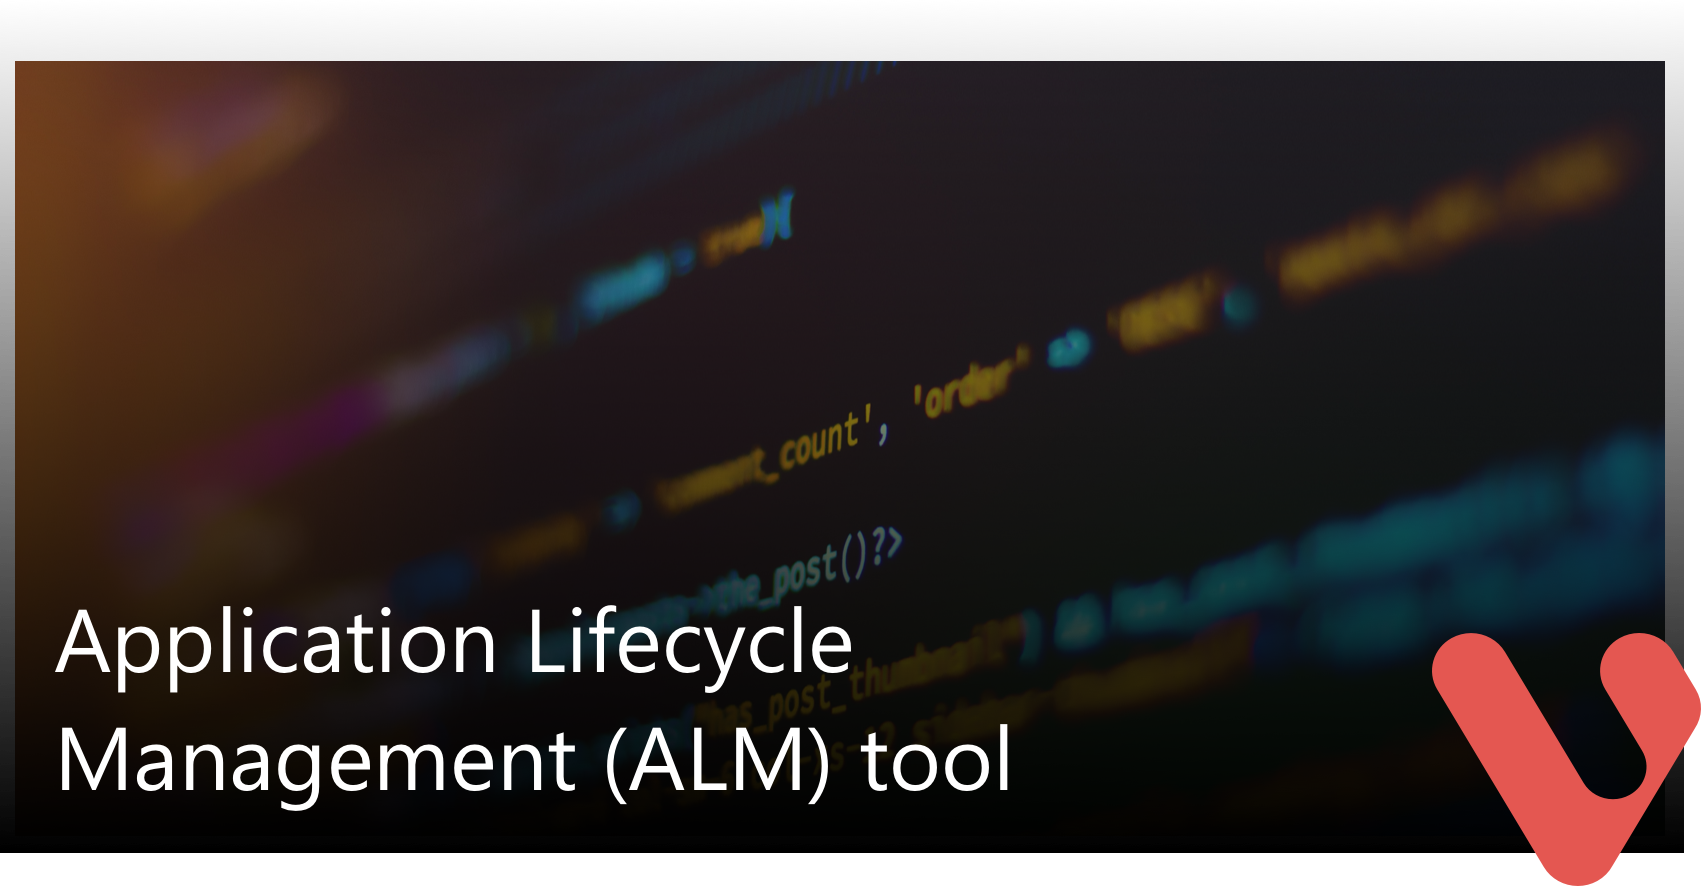 Application Lifecycle management tool